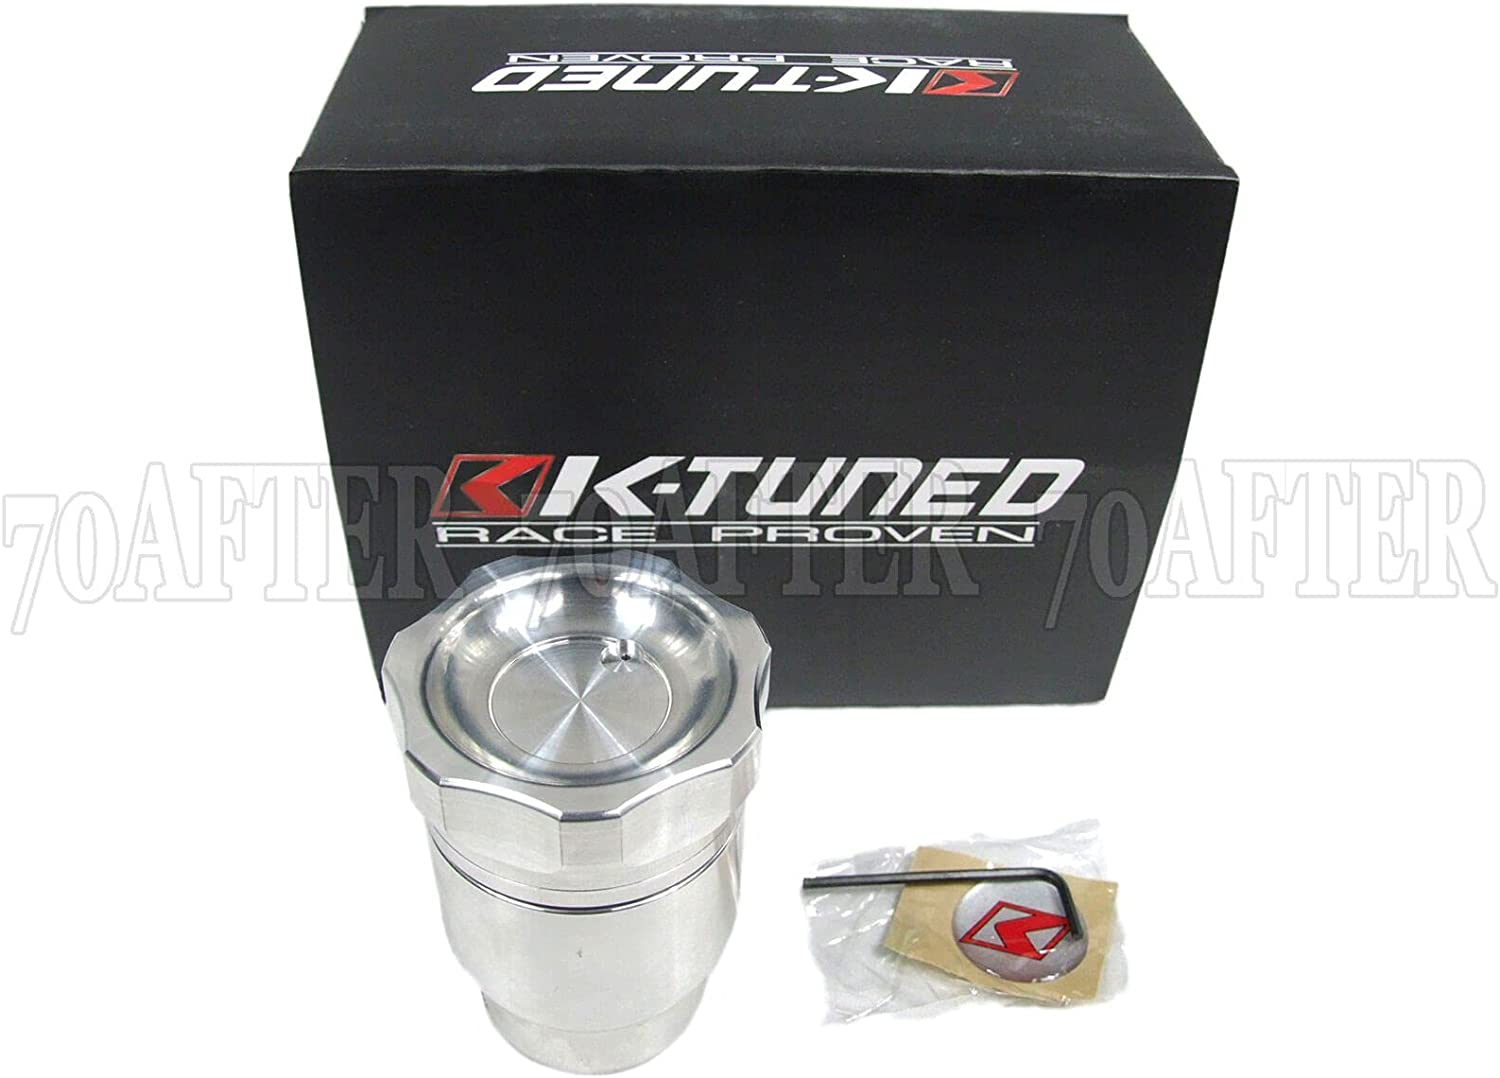 K-Tuned CMC Clutch Master Cylinder with 200 Compatible It is New Free Shipping very popular Reservoir